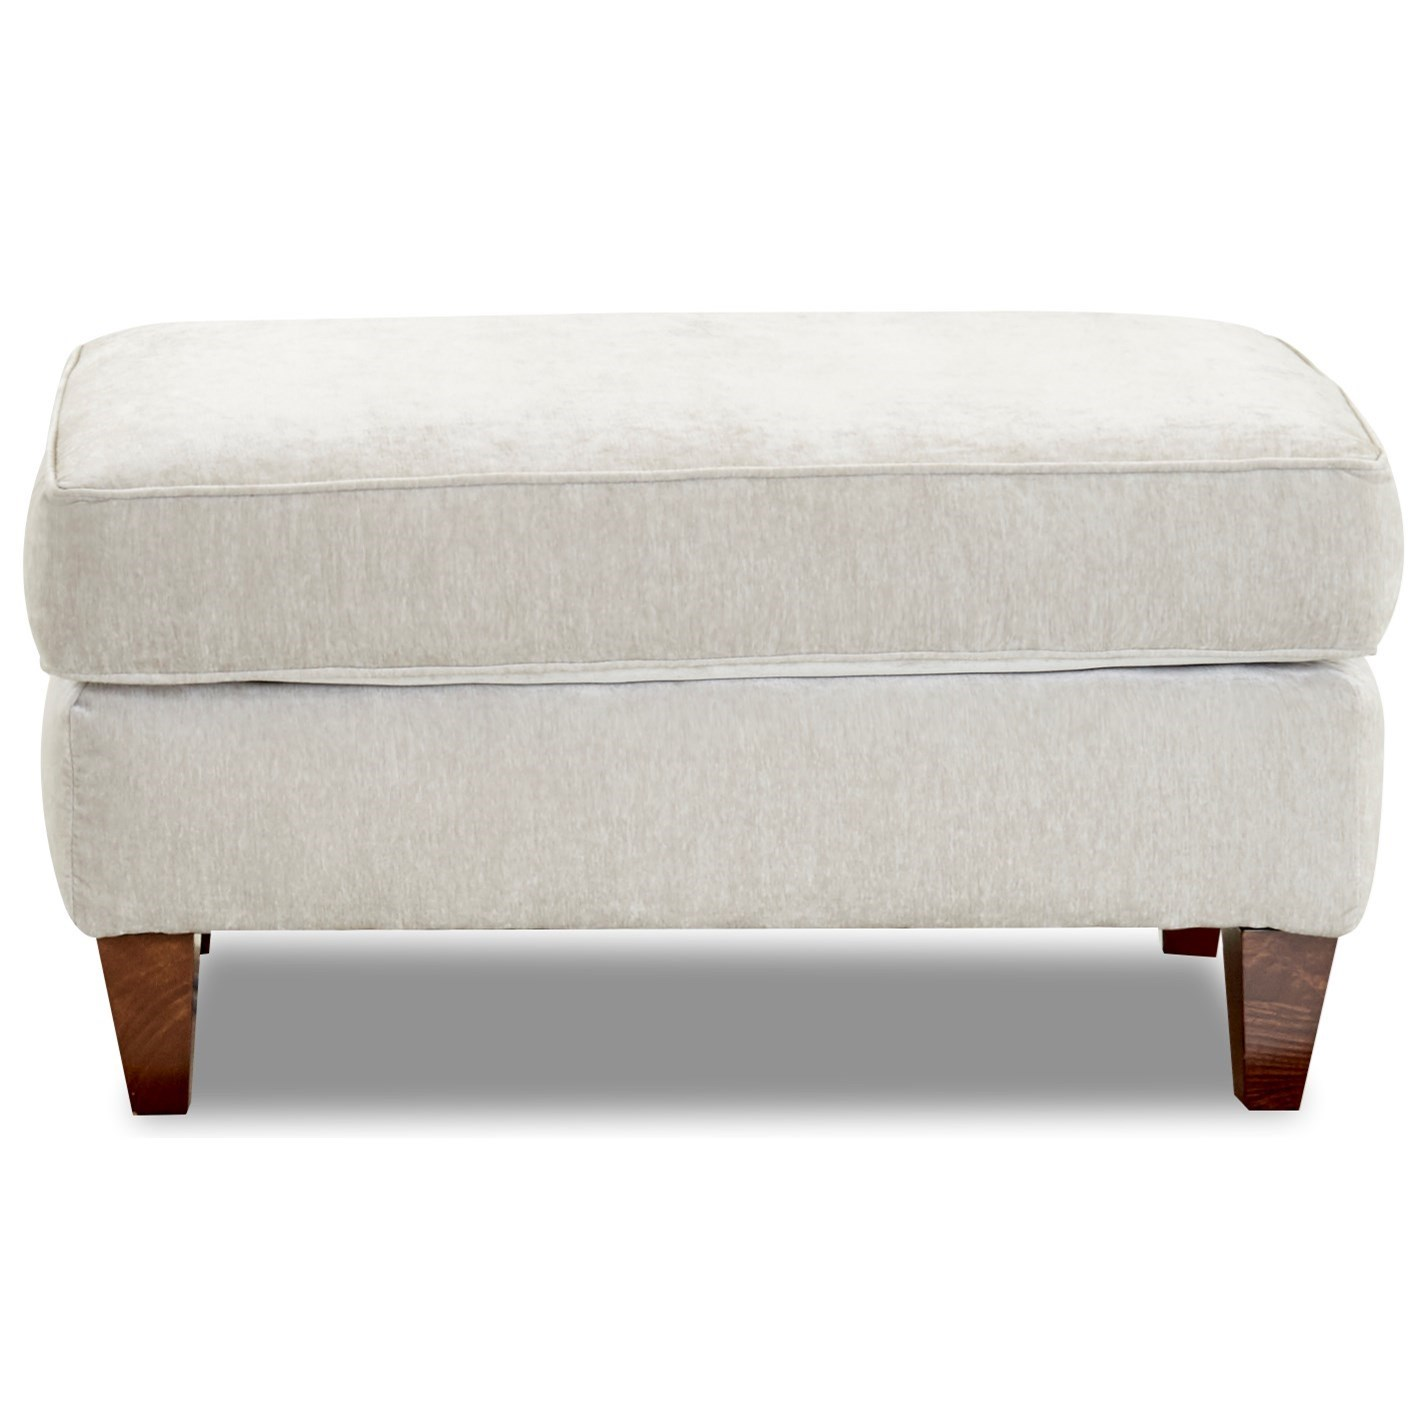 Kimbal Ottoman by Klaussner at Johnny Janosik